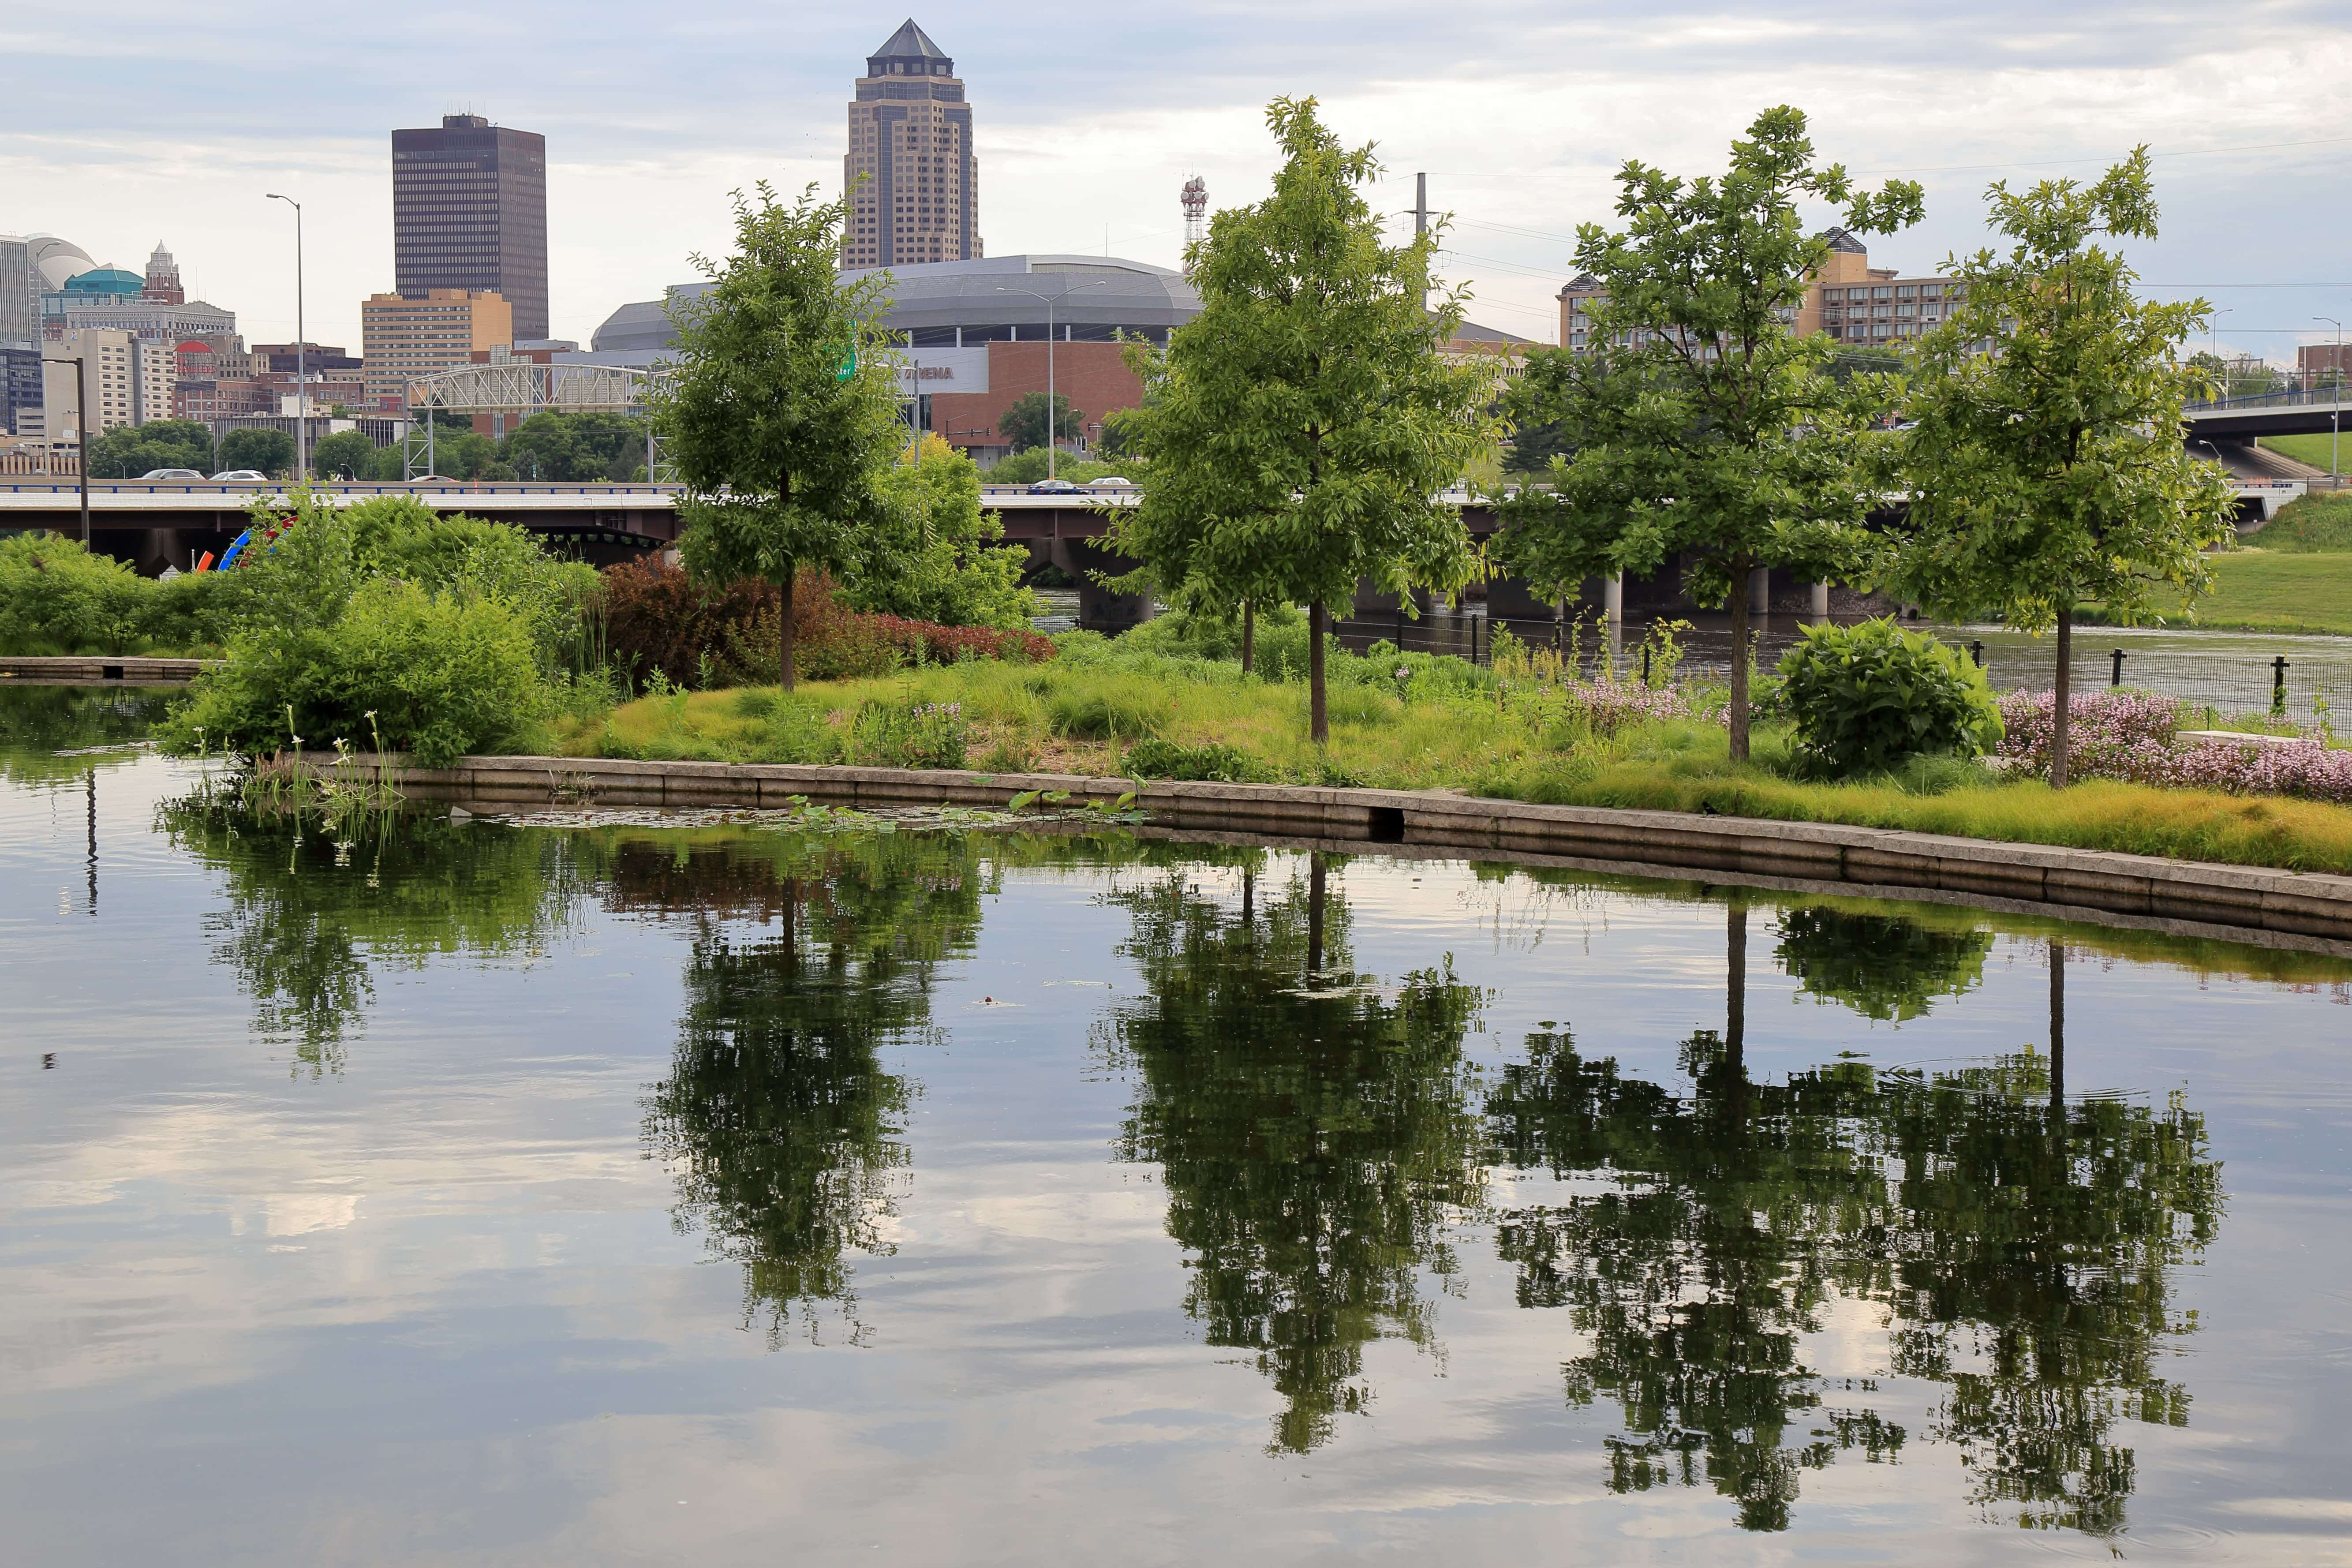 Looking across the water garden to the Lauridsen Savanna and downtown Des Moines skyline. Photo by Kelly Norris.